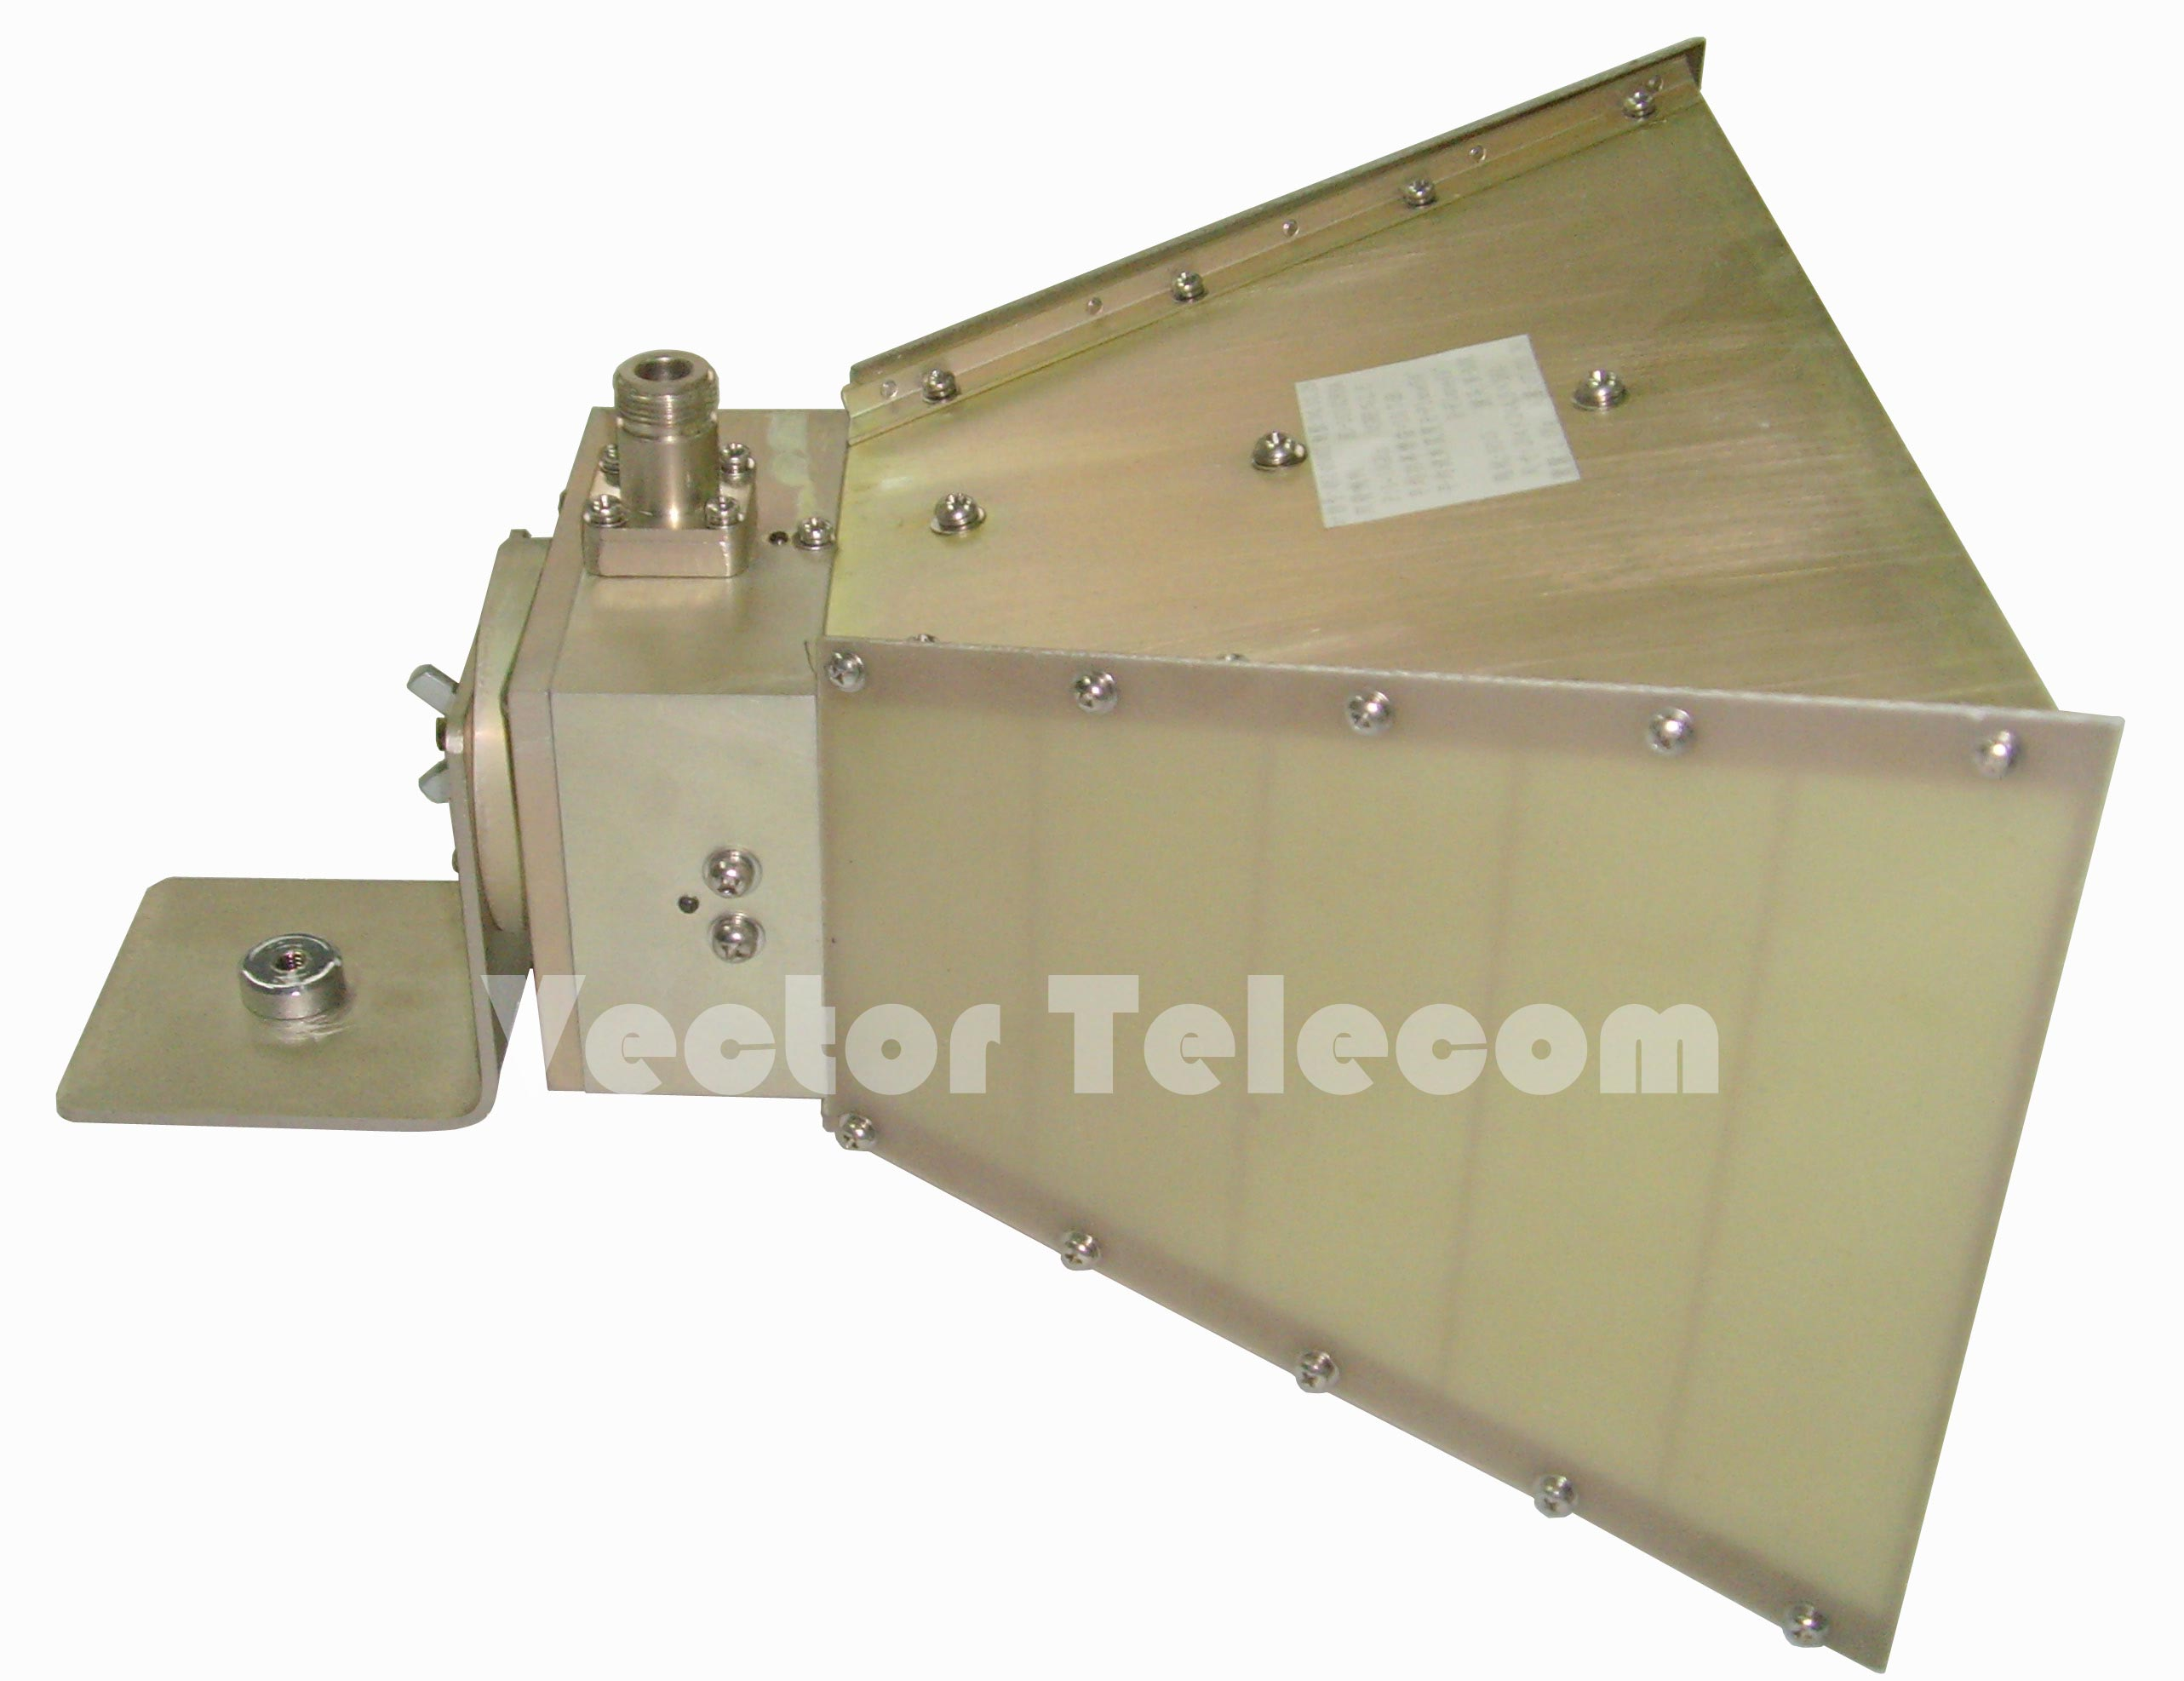 Wideband Dual-Ridged Horn Antenna